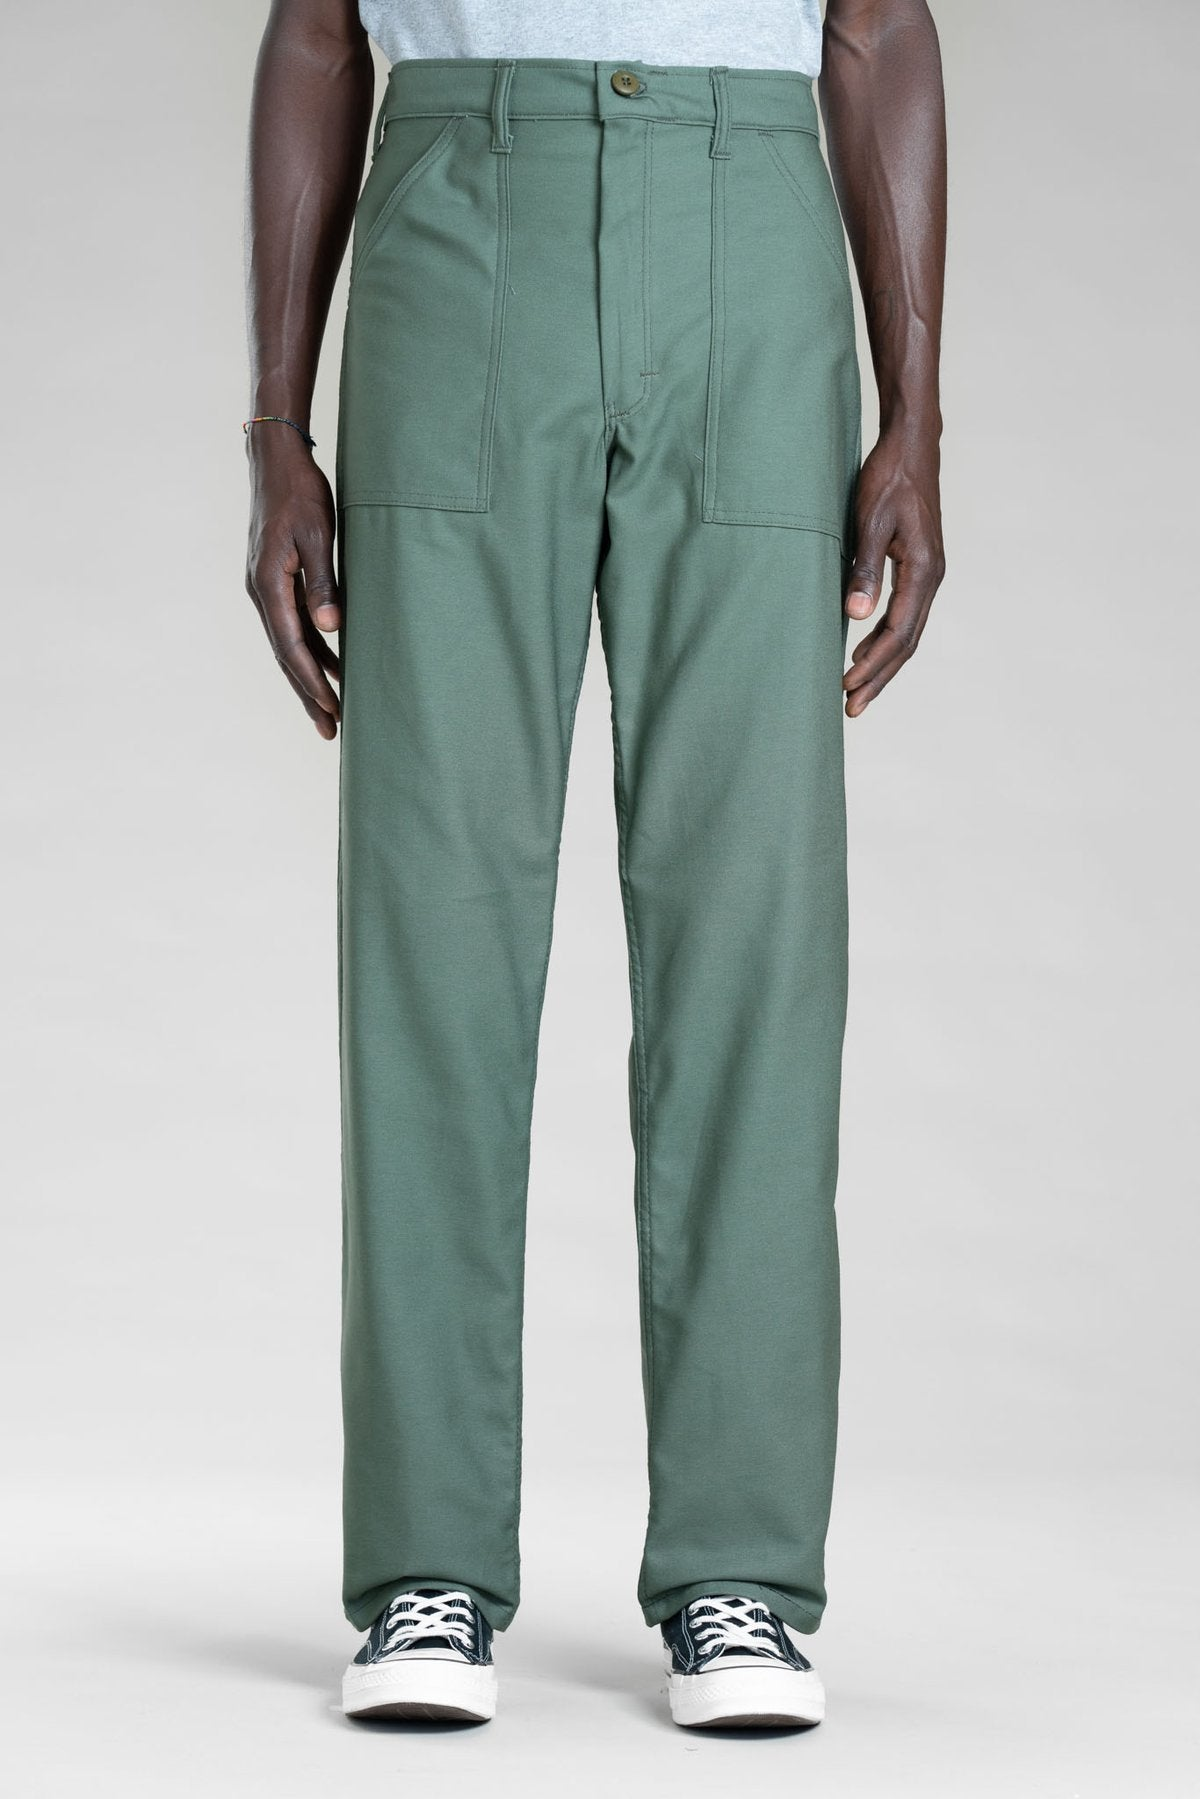 Stan Ray Loose Fatigue Olive Sateen